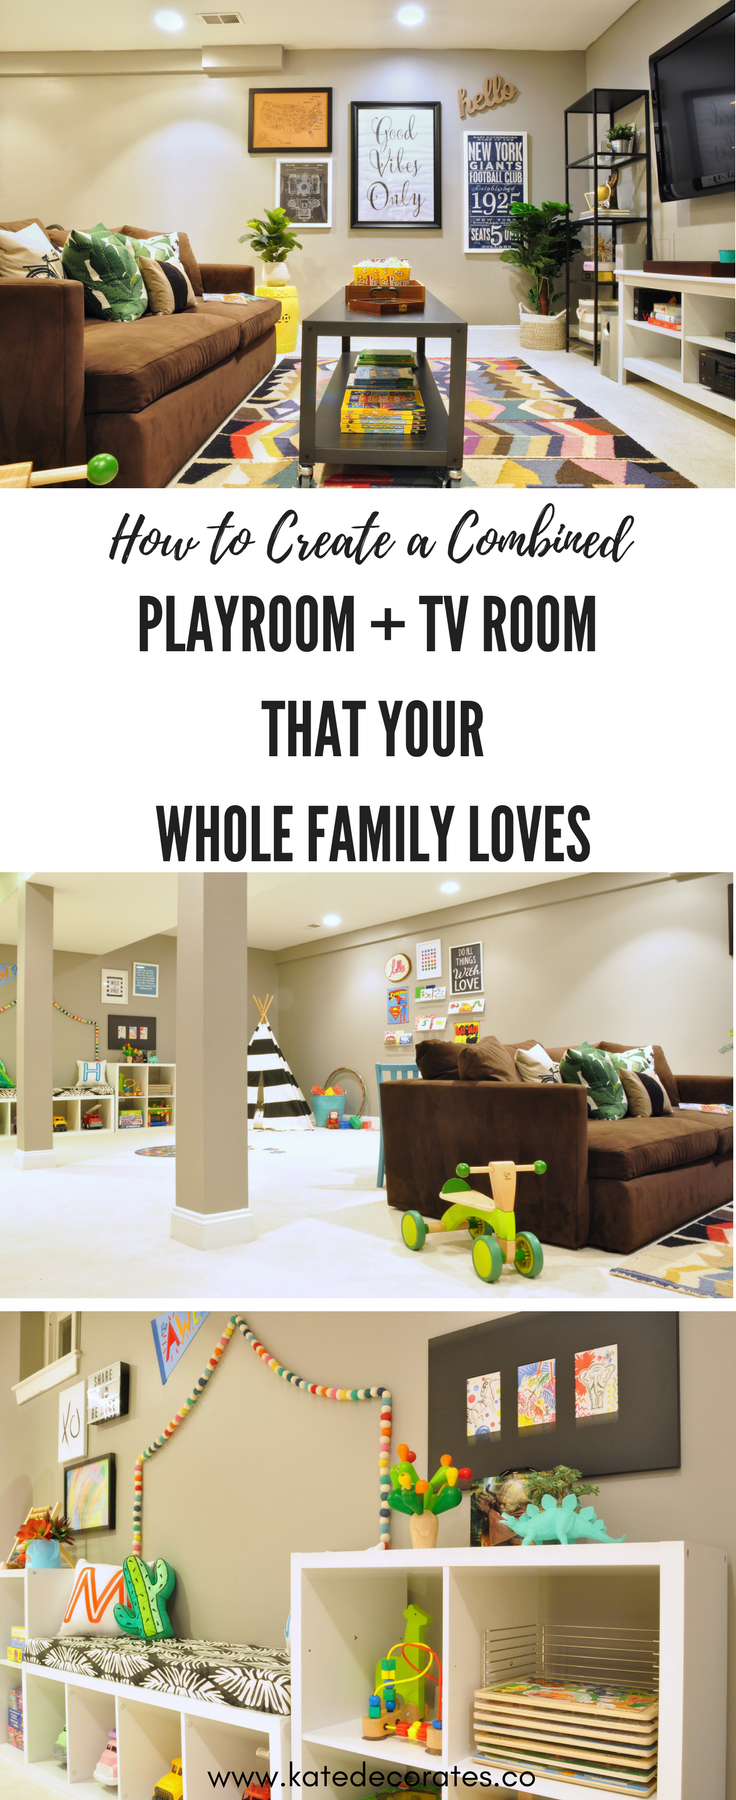 Before and After: Our Basement Playroom + TV Room Reveal images